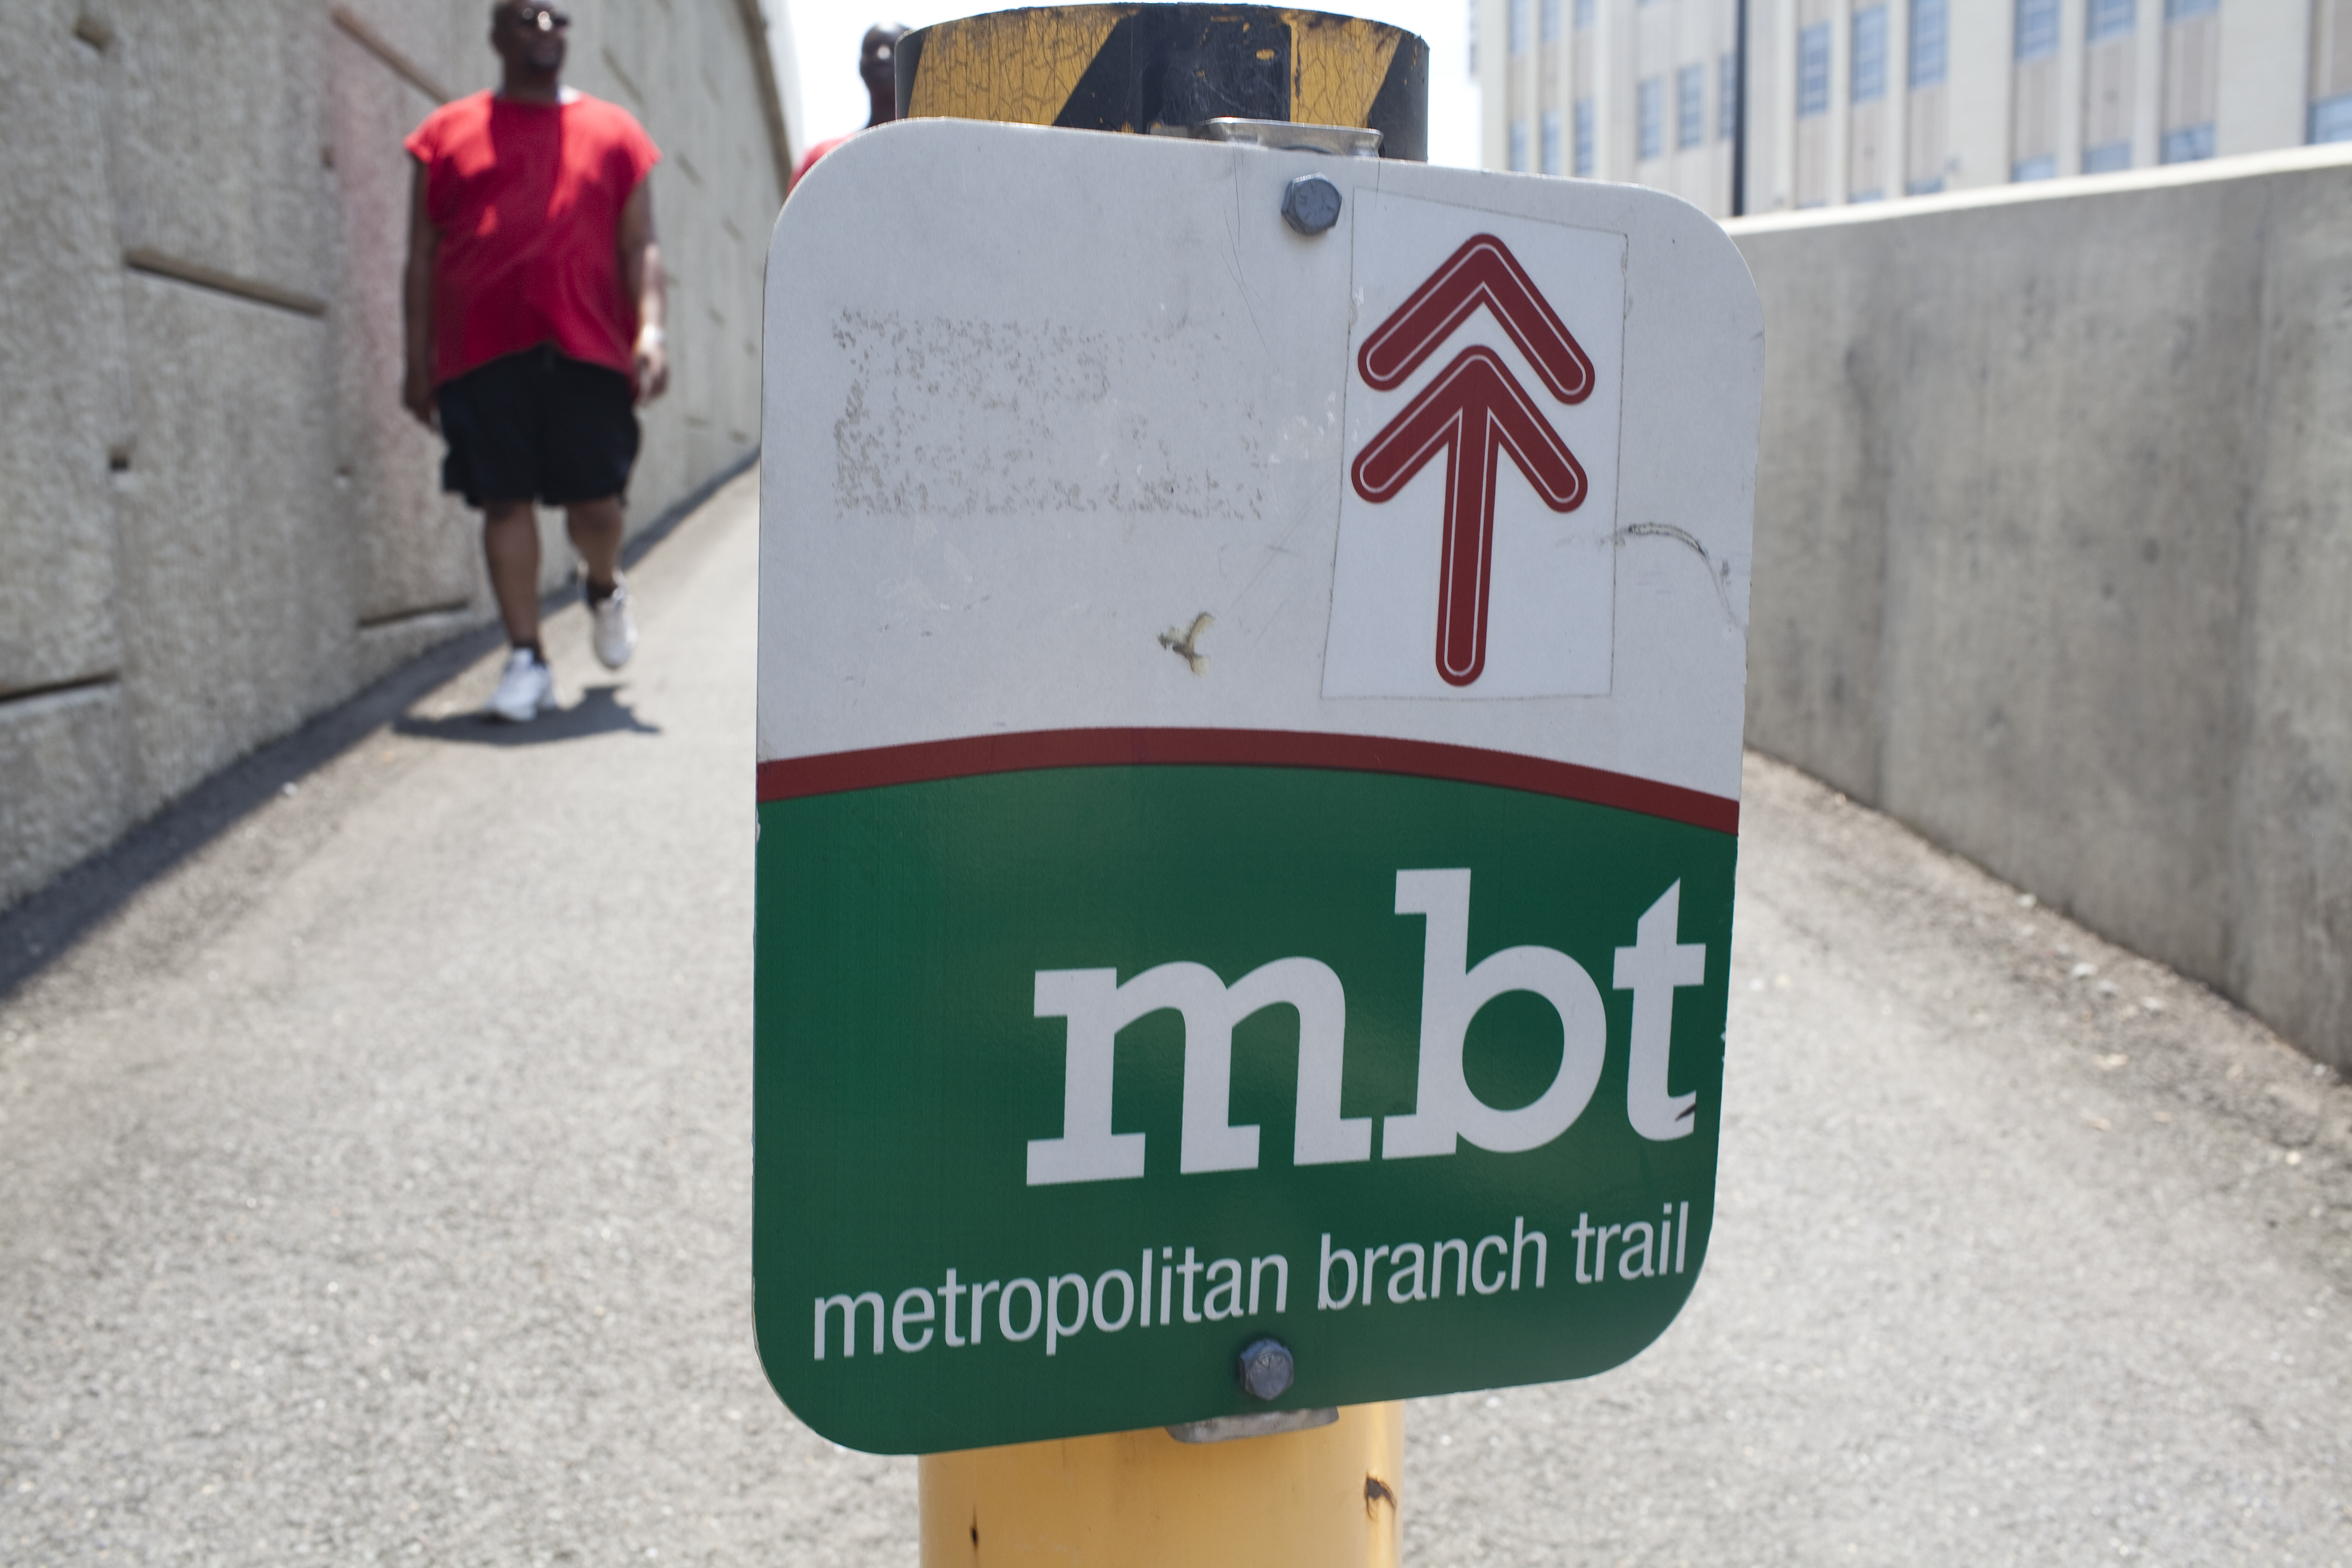 A green and white sign for the Metropolitan Branch Trail near the NoMa–Gallaudet Metro station. A man wearing a red t-shirt and shorts is seen walking behind the sign.